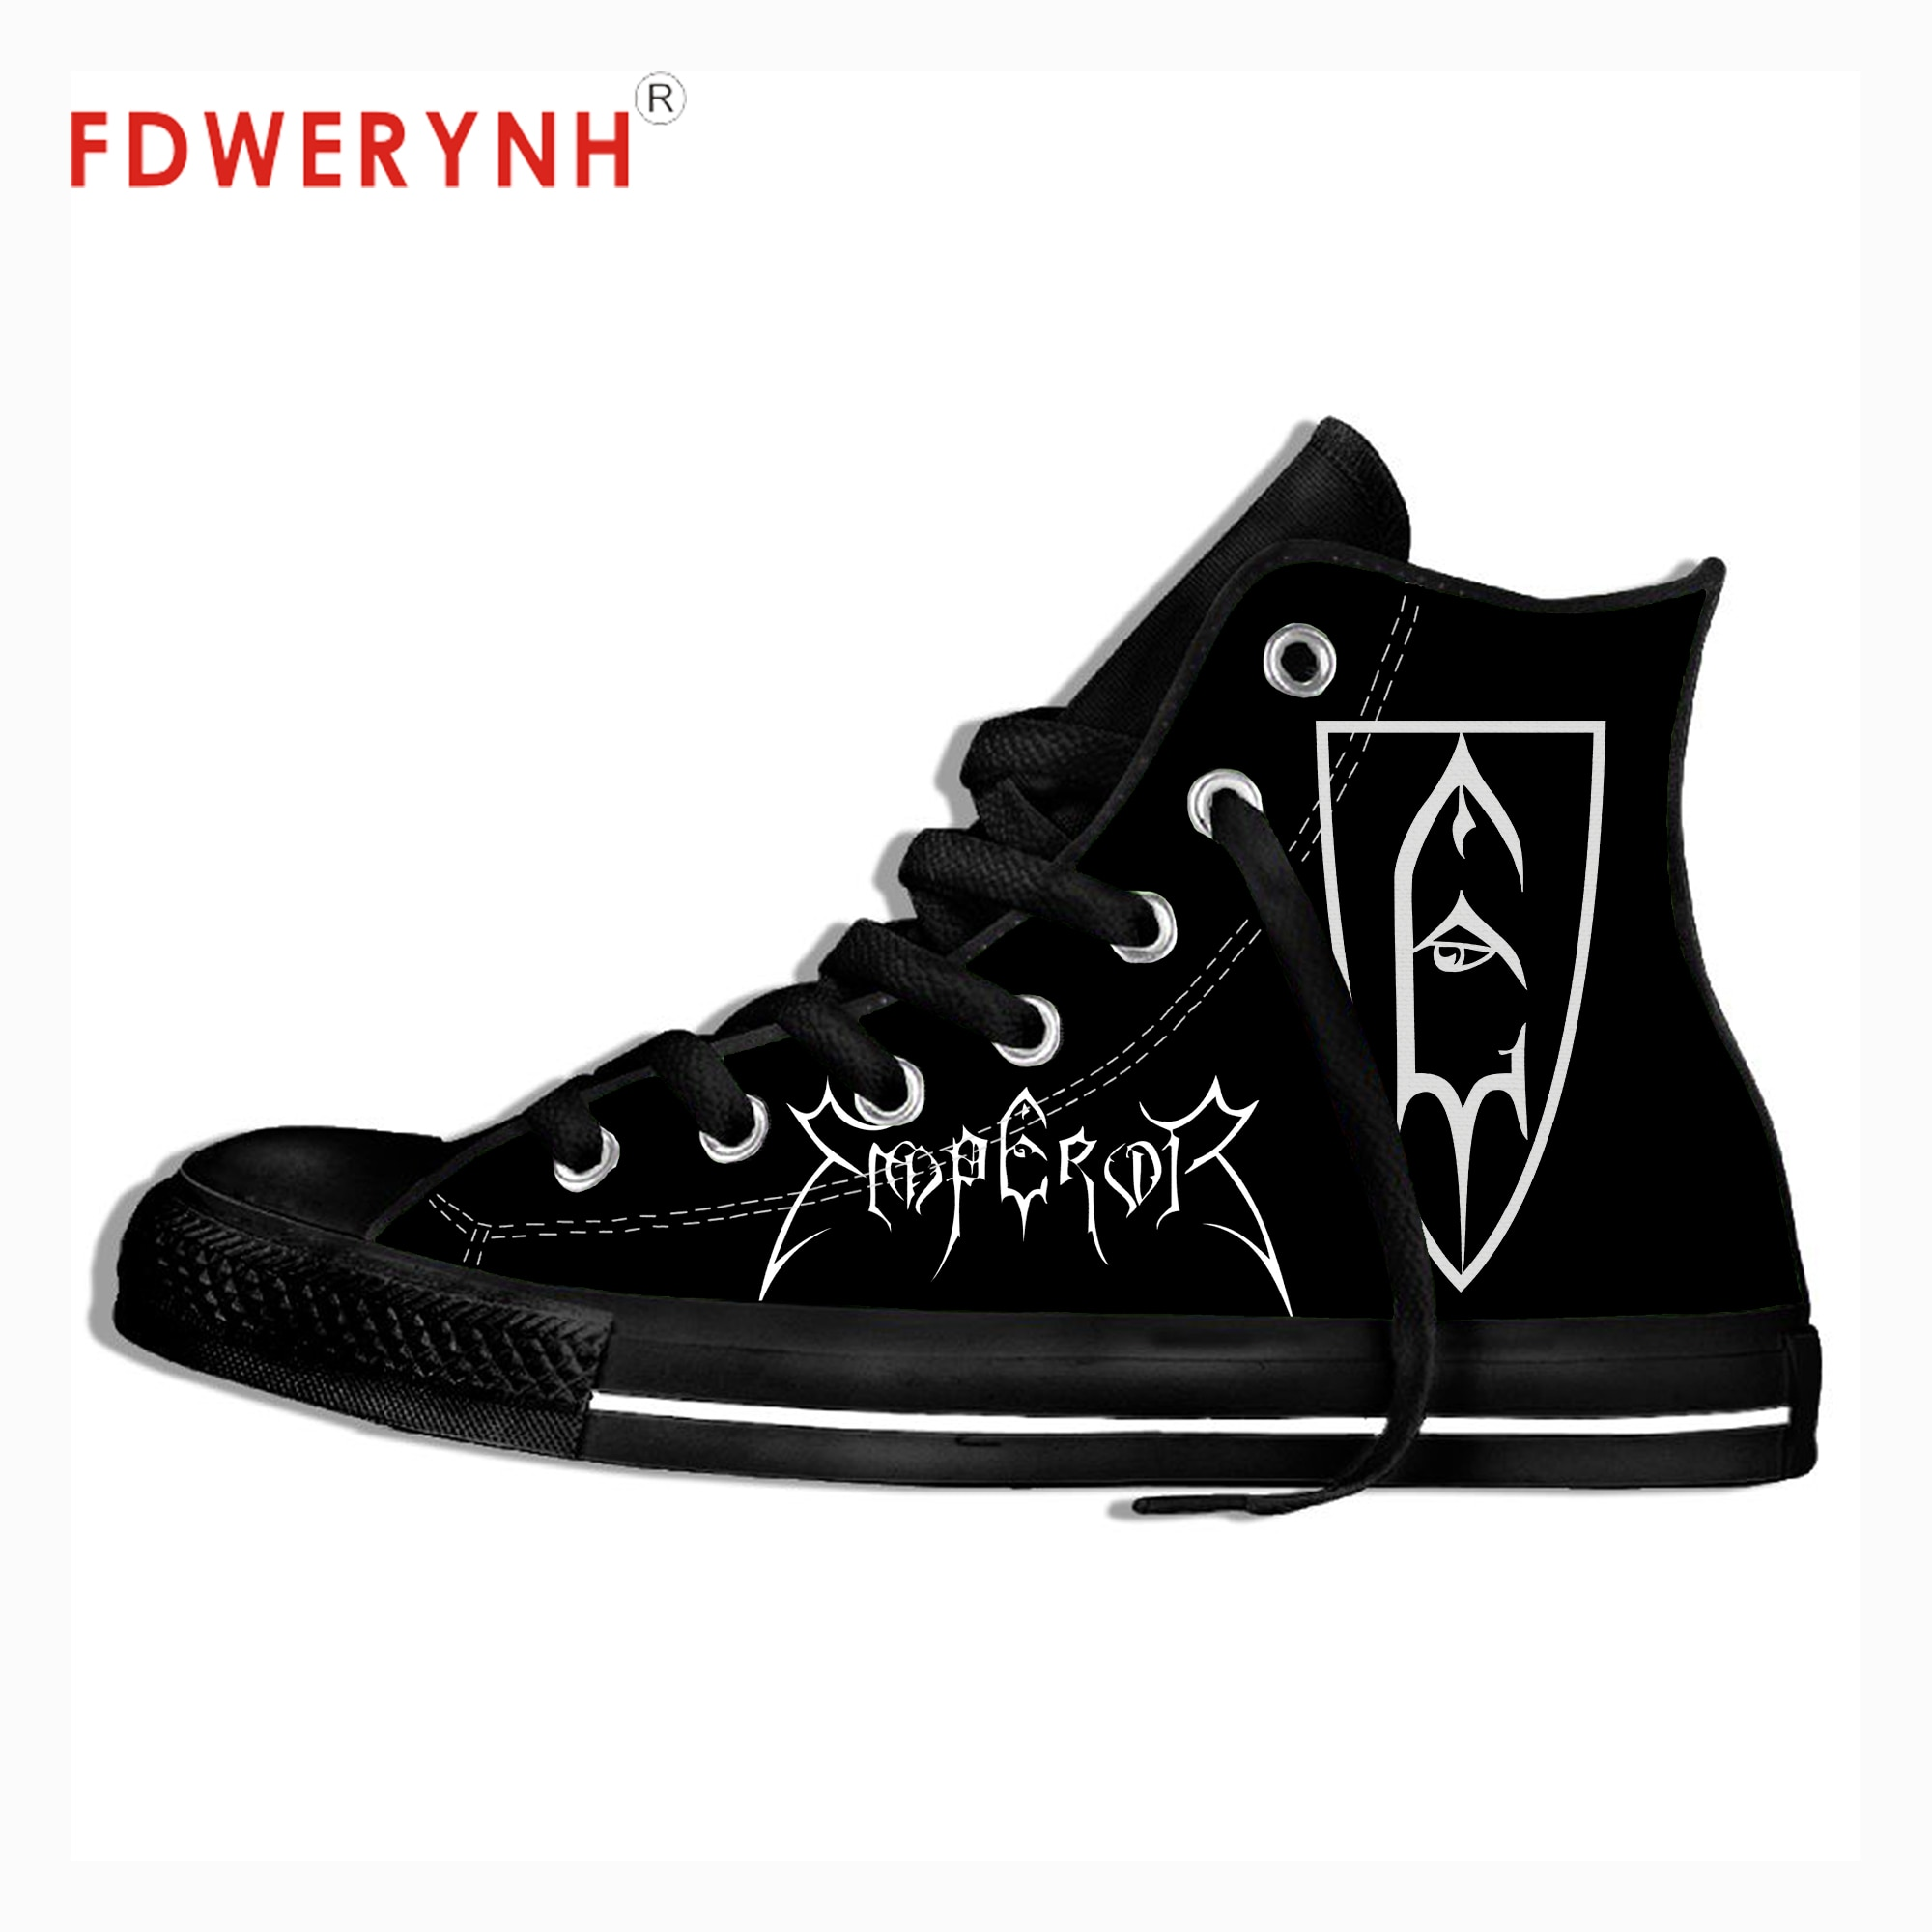 Фото - Men Walking Shoes Casual Canvas Shoes Emperor Band Rock Pop Band Metal Music Fashion Lightweight Breathable Shoes For Women music band